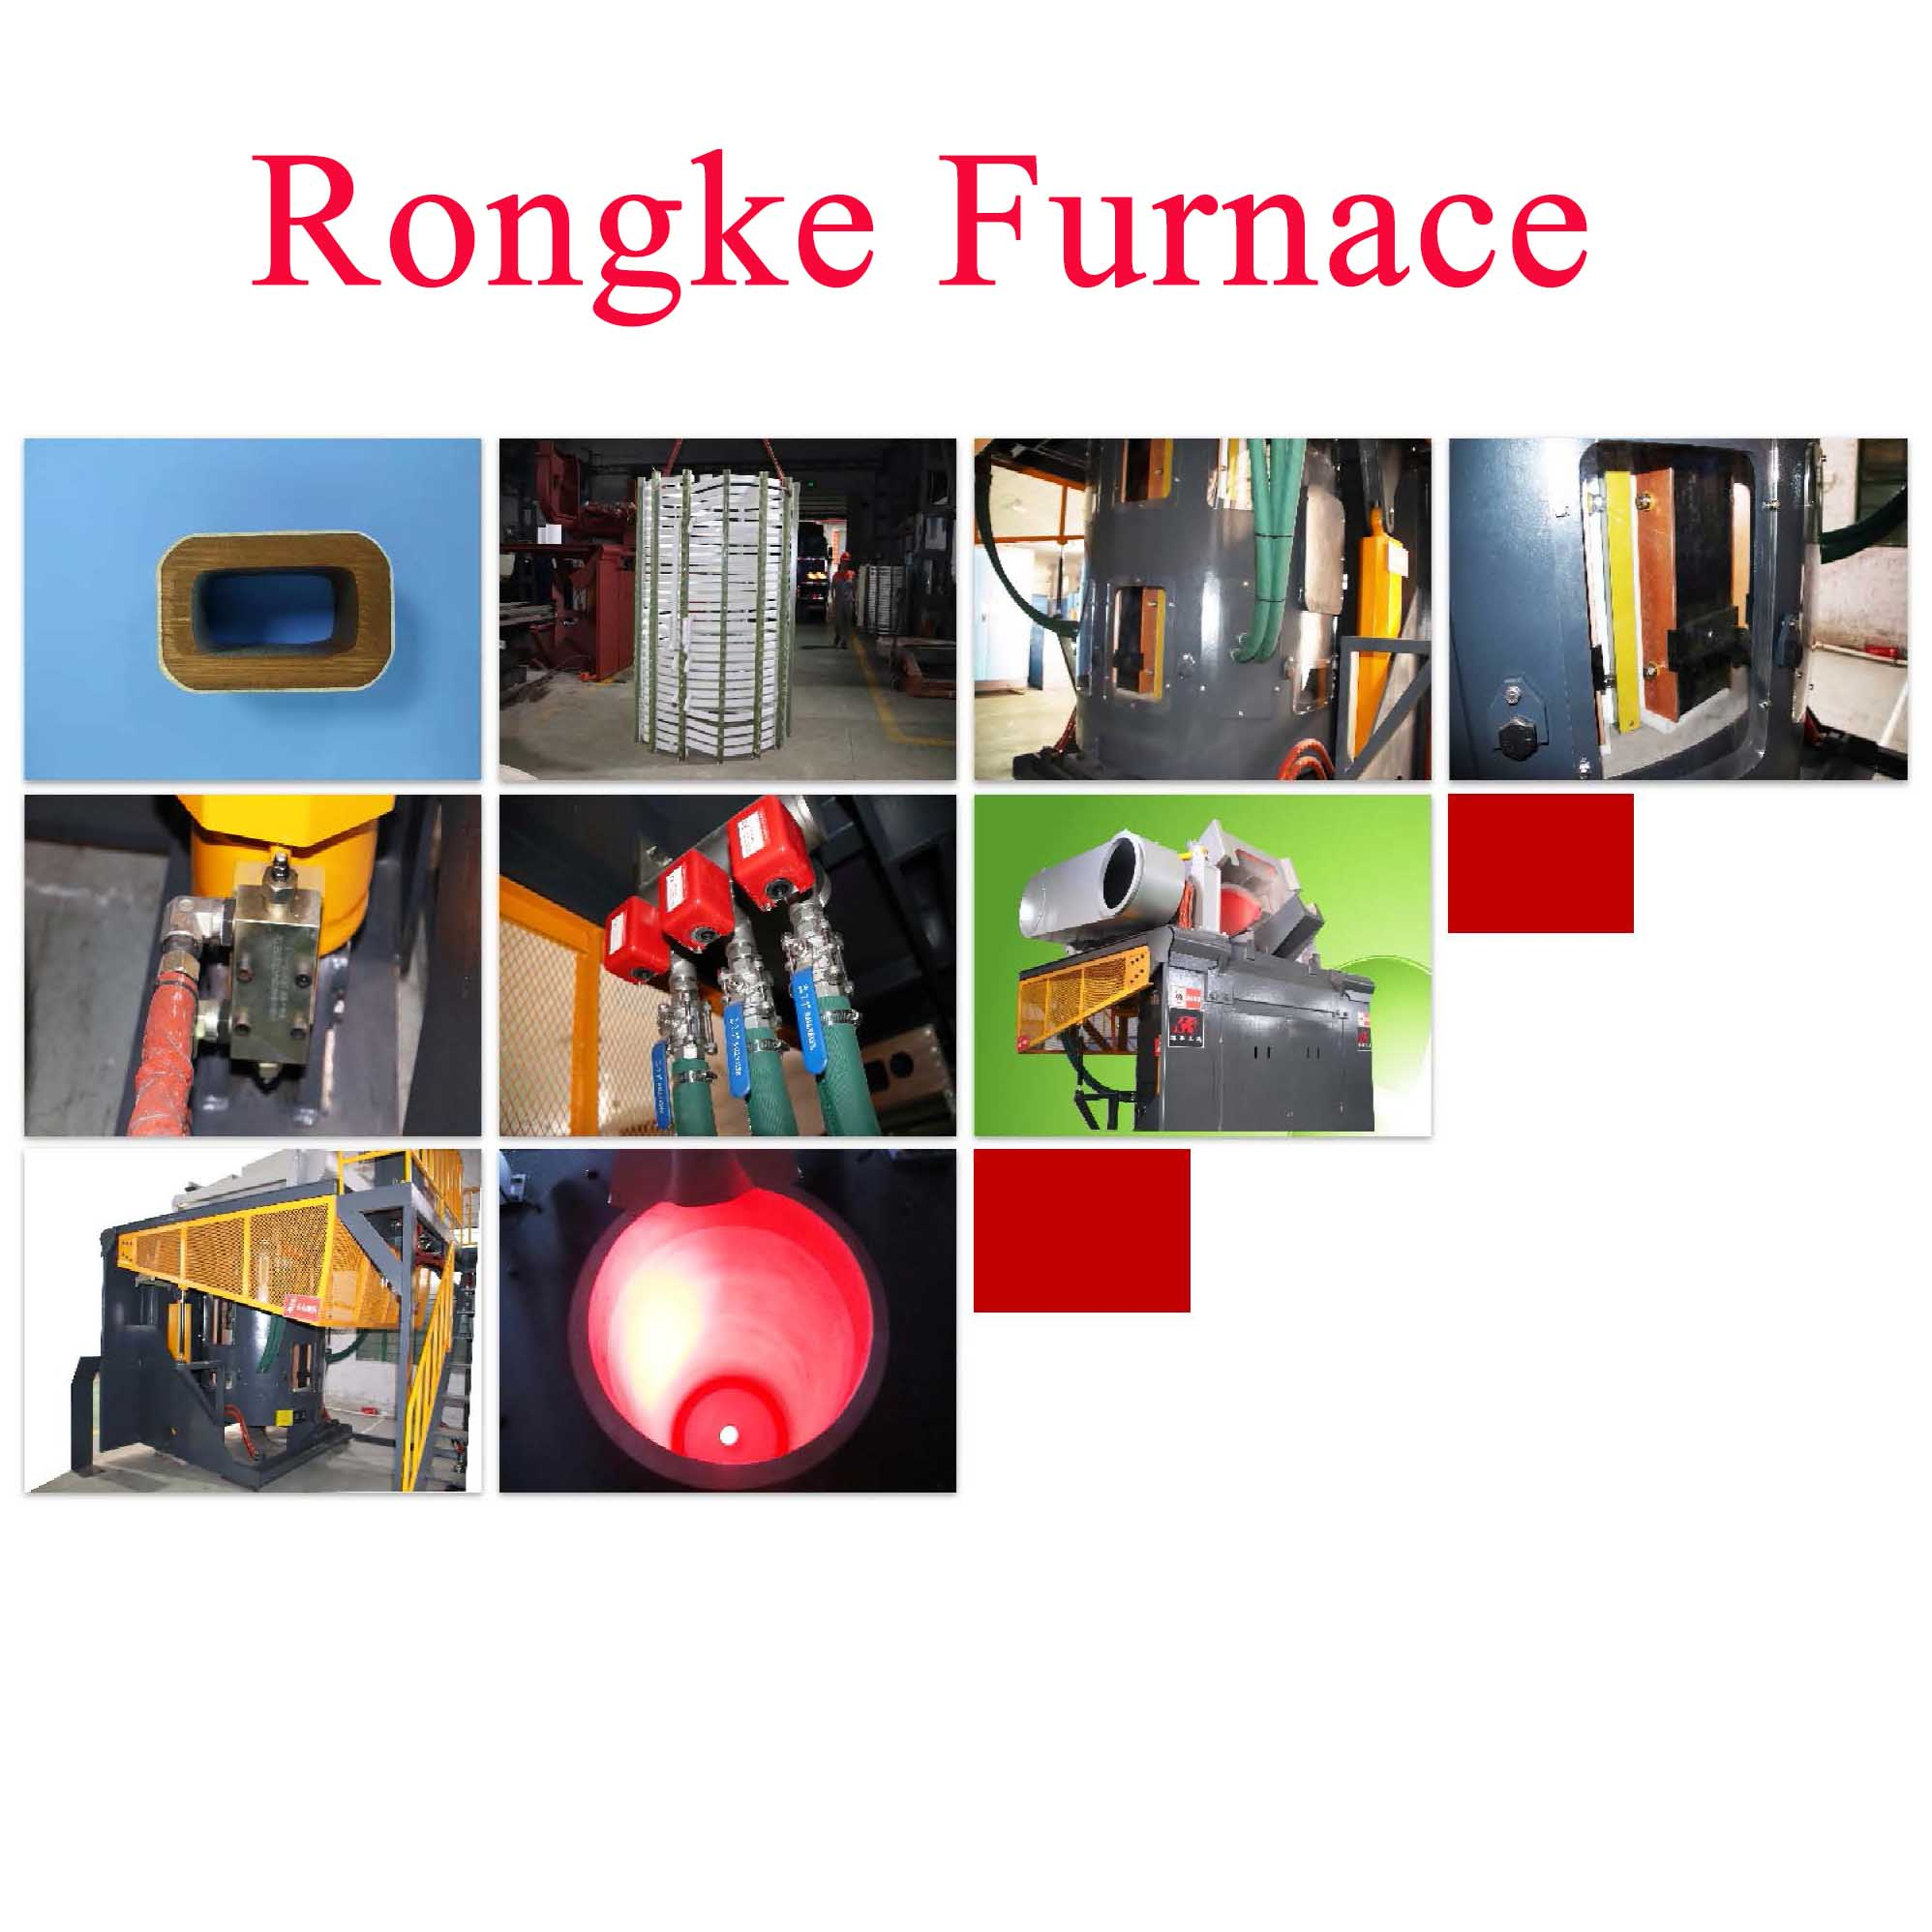 induction furnace2